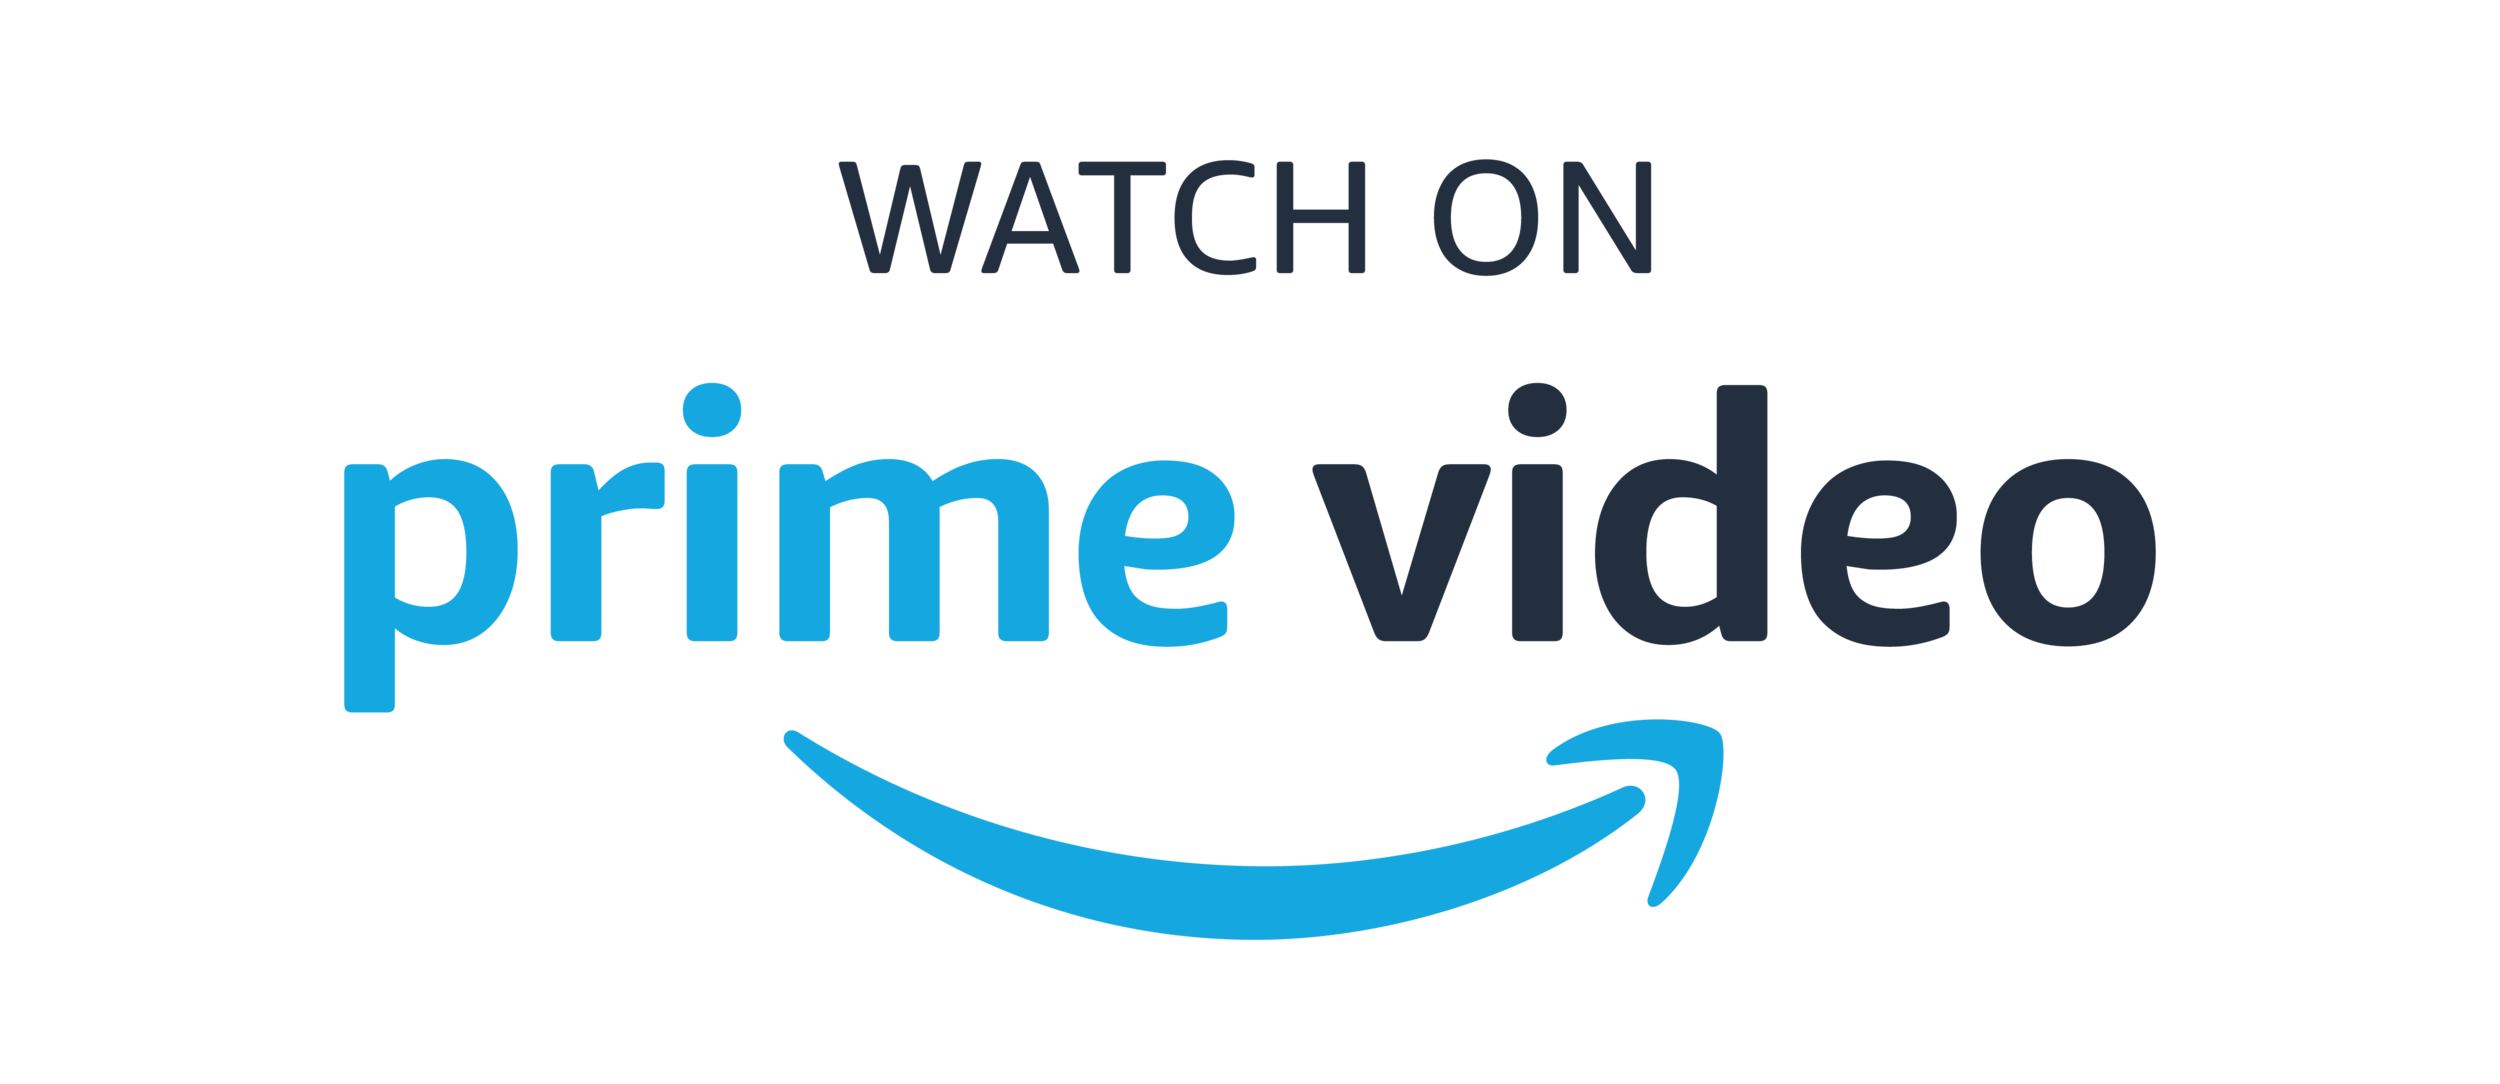 The Critic  premiered on Prime Video as part of Amazon's inaugural All Voices Film Festival. Watch now:  amazon.com/dp/B07SH3HDXV